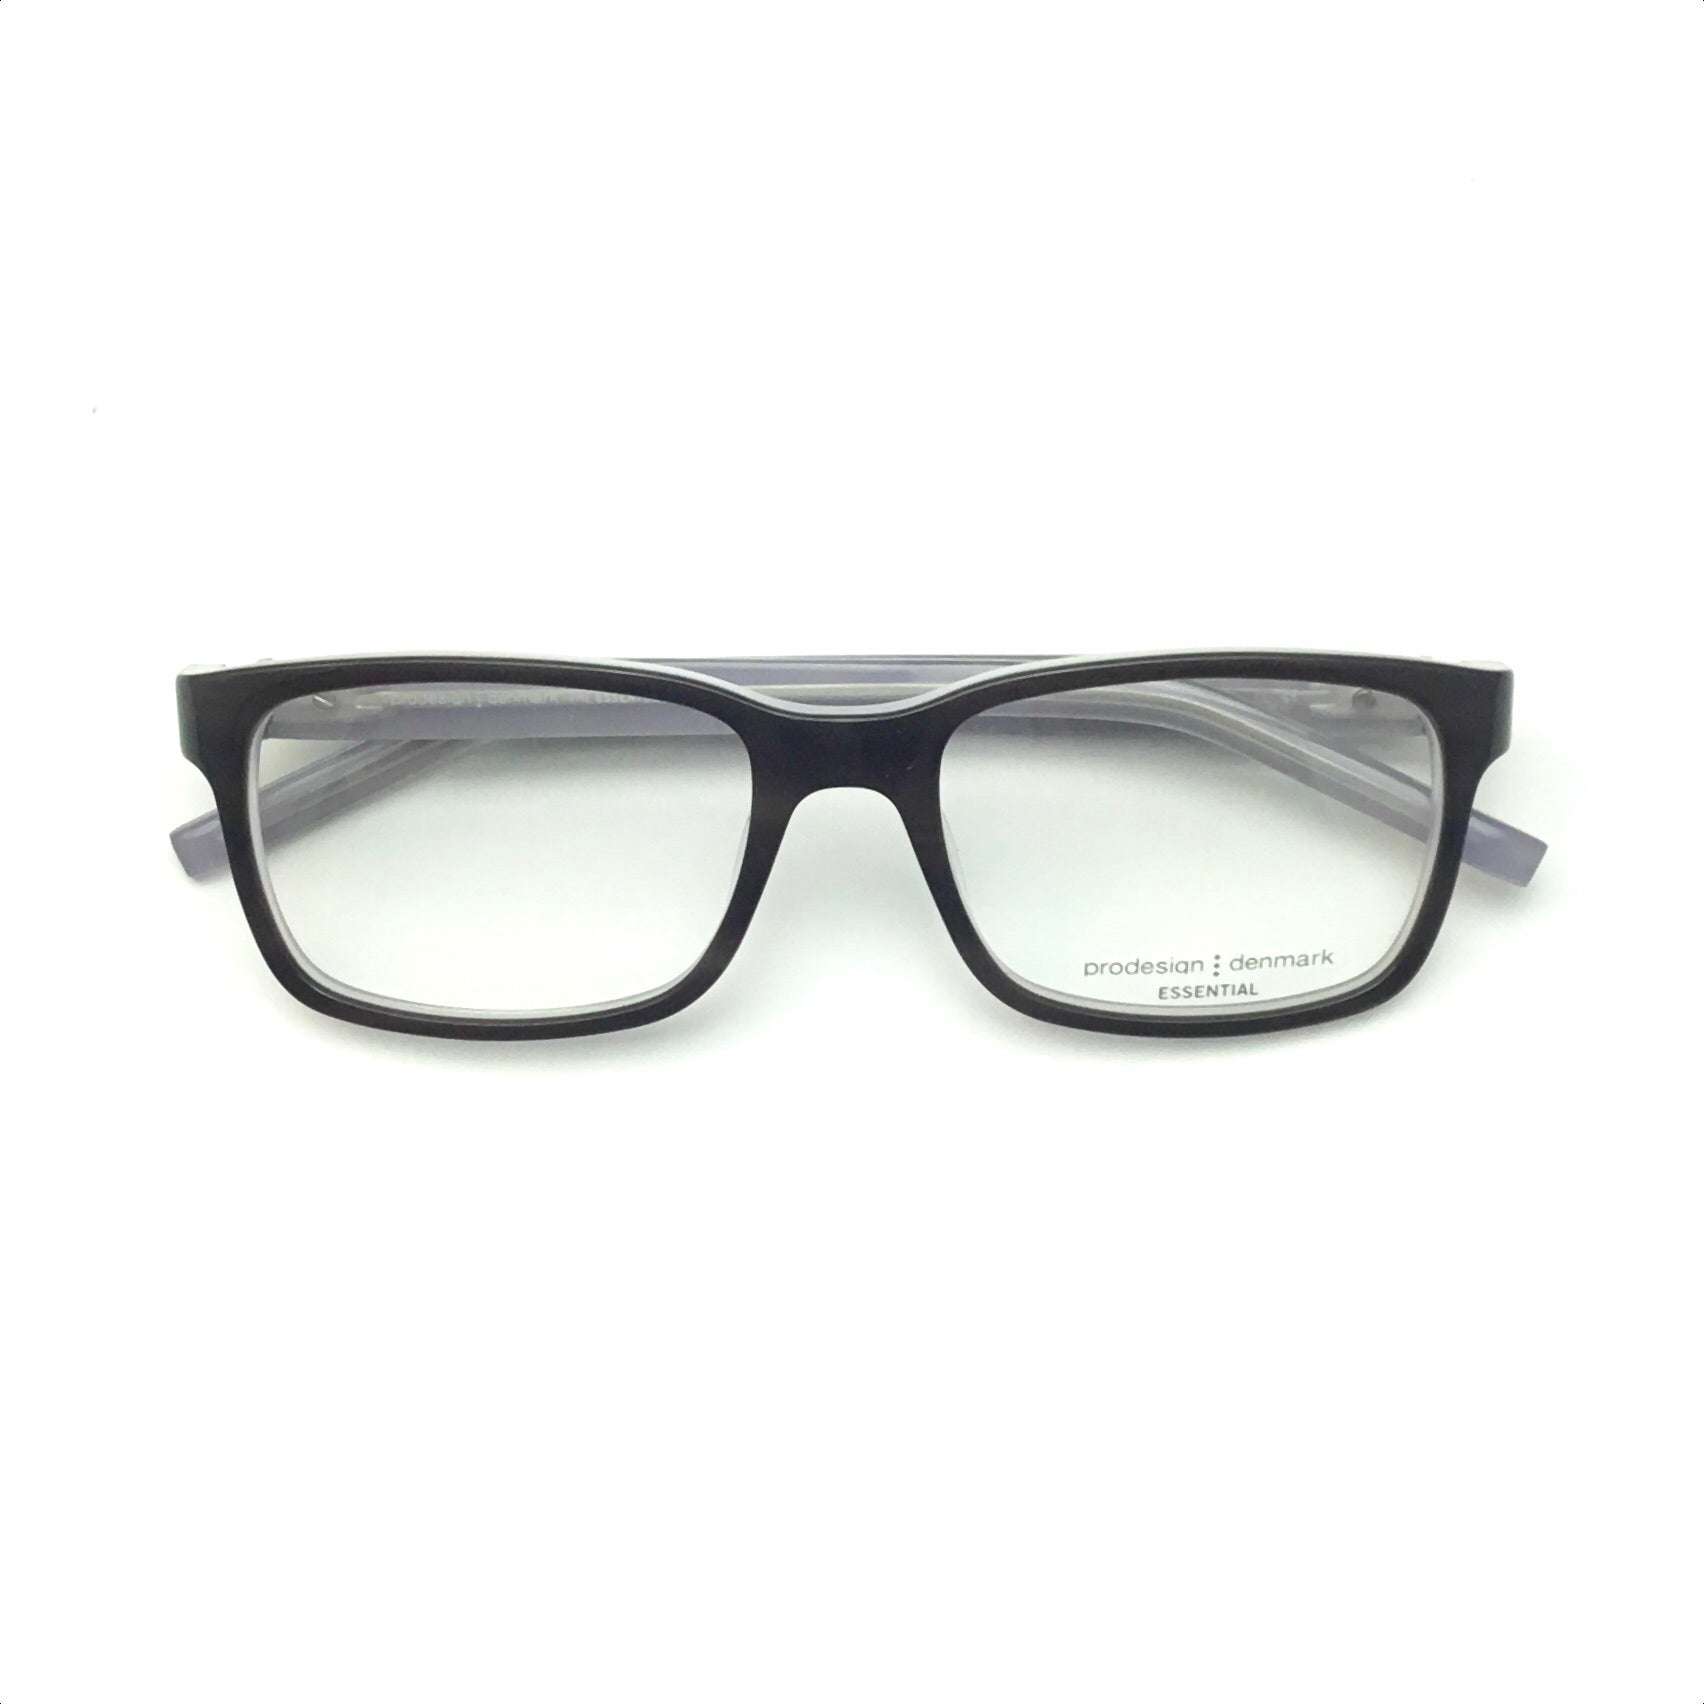 ProDesign Glasses $279 PETIT O6